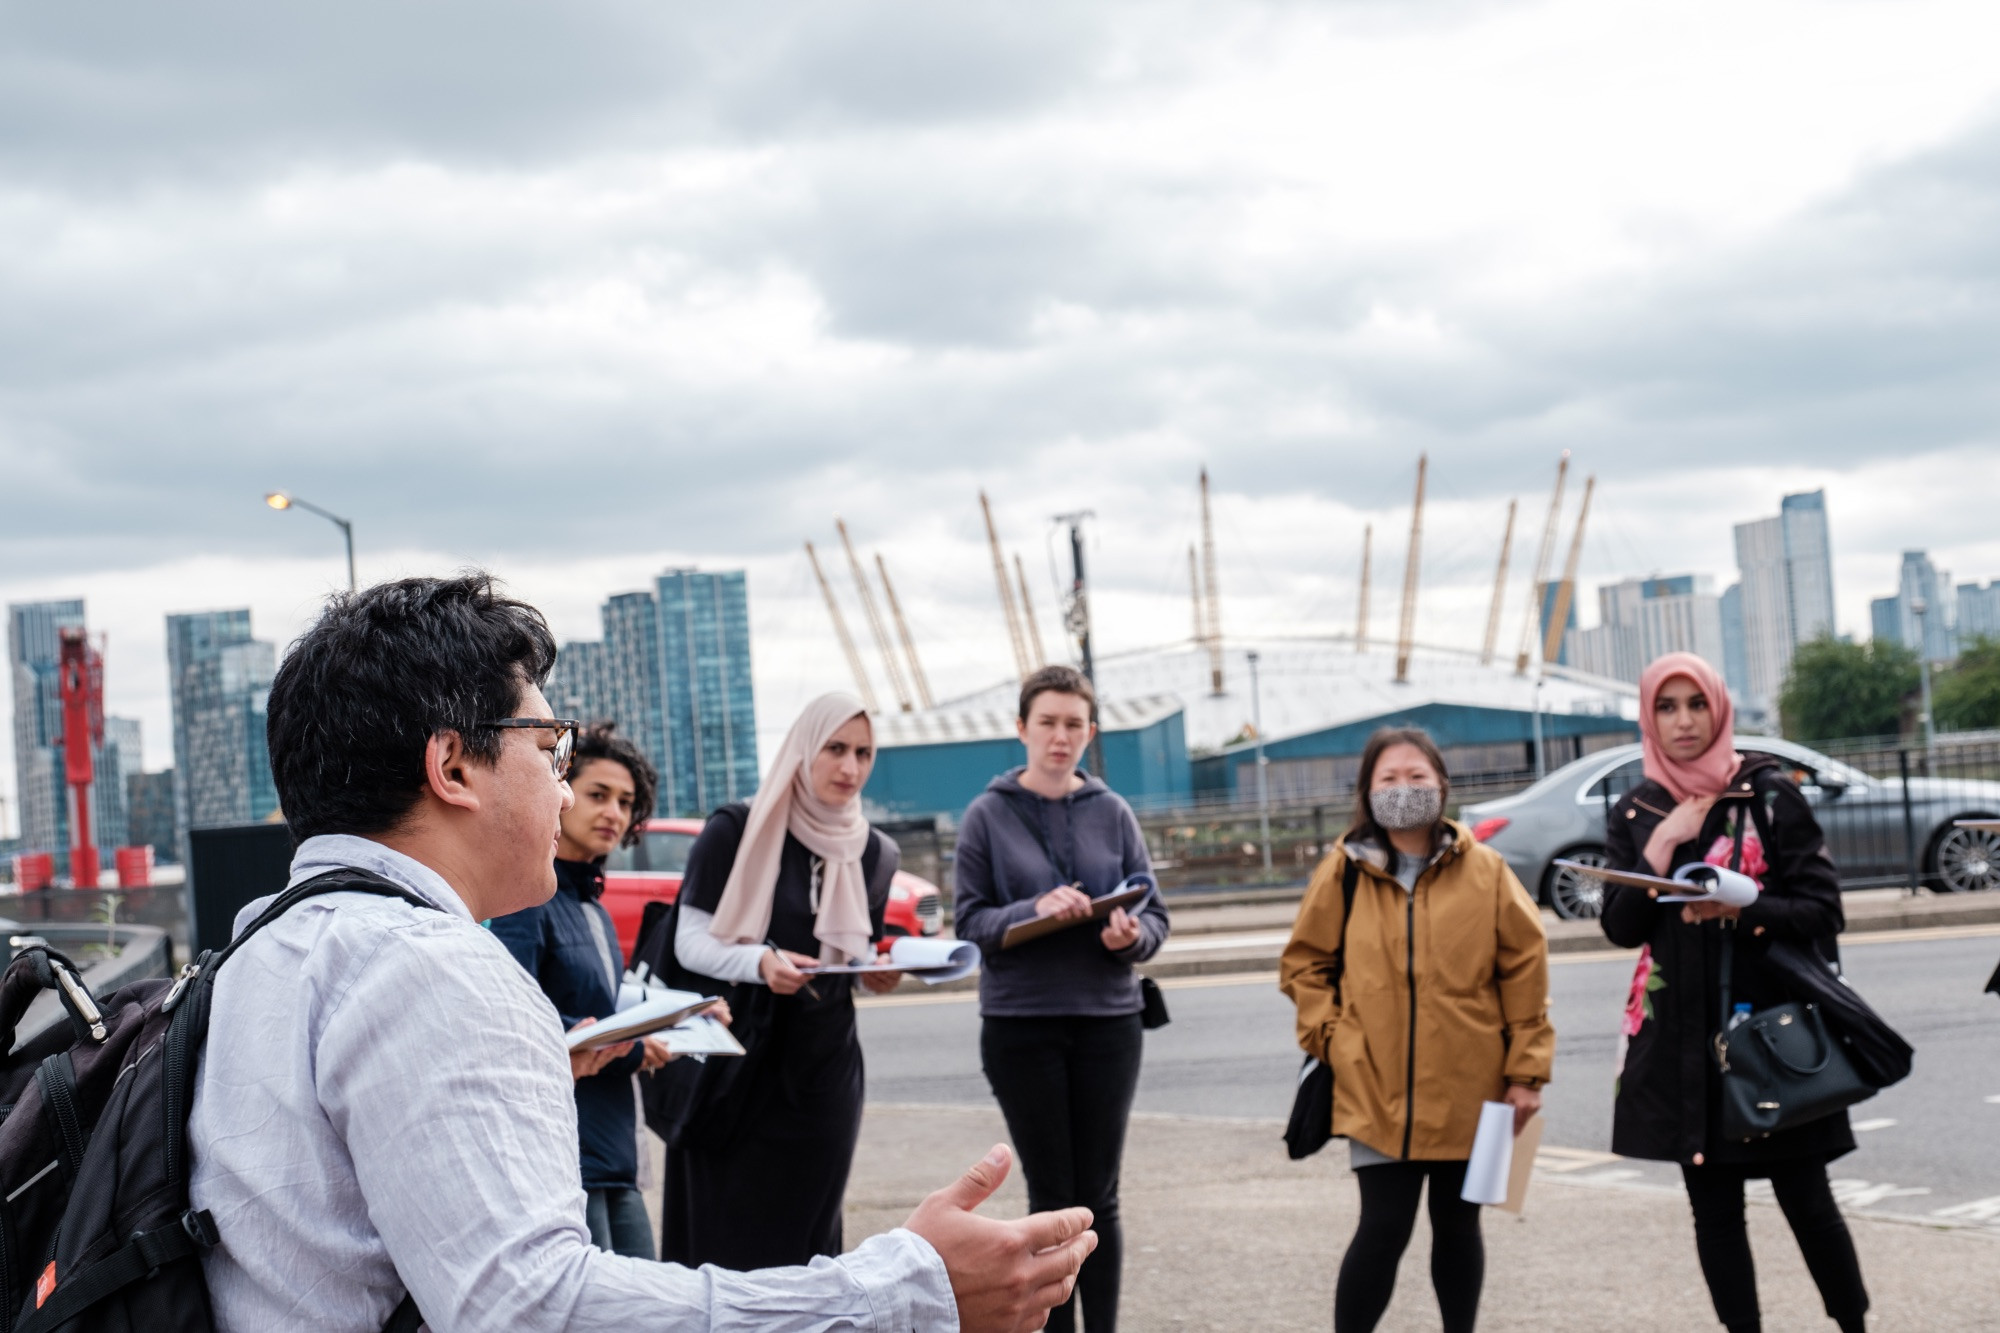 Royal Docks Public Spaces Community Working Group on Silvertown Way flyover